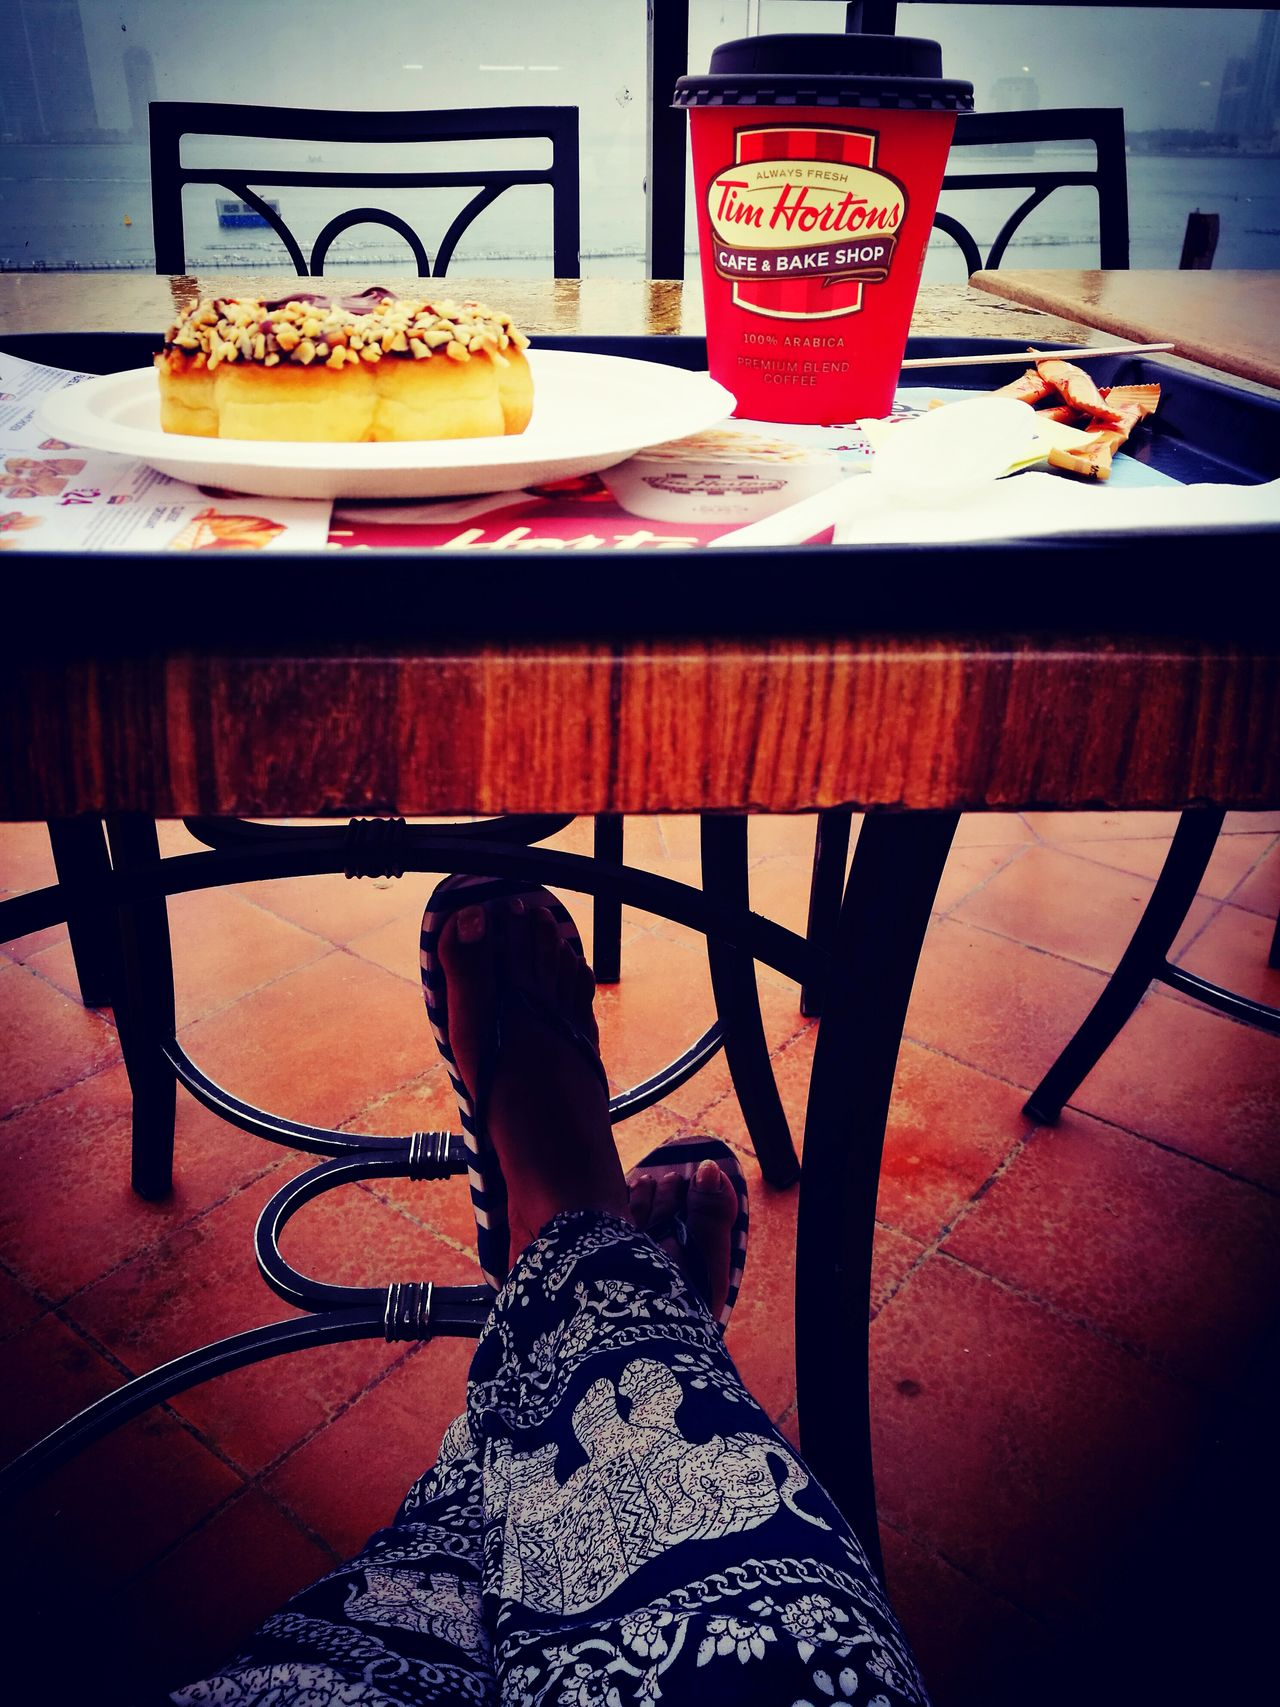 Drink Food And Drink One Person Timhortons Food Huawei P9 Leica TimepassPhotography Mobilephotography HuaweiP9 Happiness♥ No People Huaweiphotography Loveforphotography Beauty In Nature Scenics Cloud - Sky Outdoors Frech Vanilla